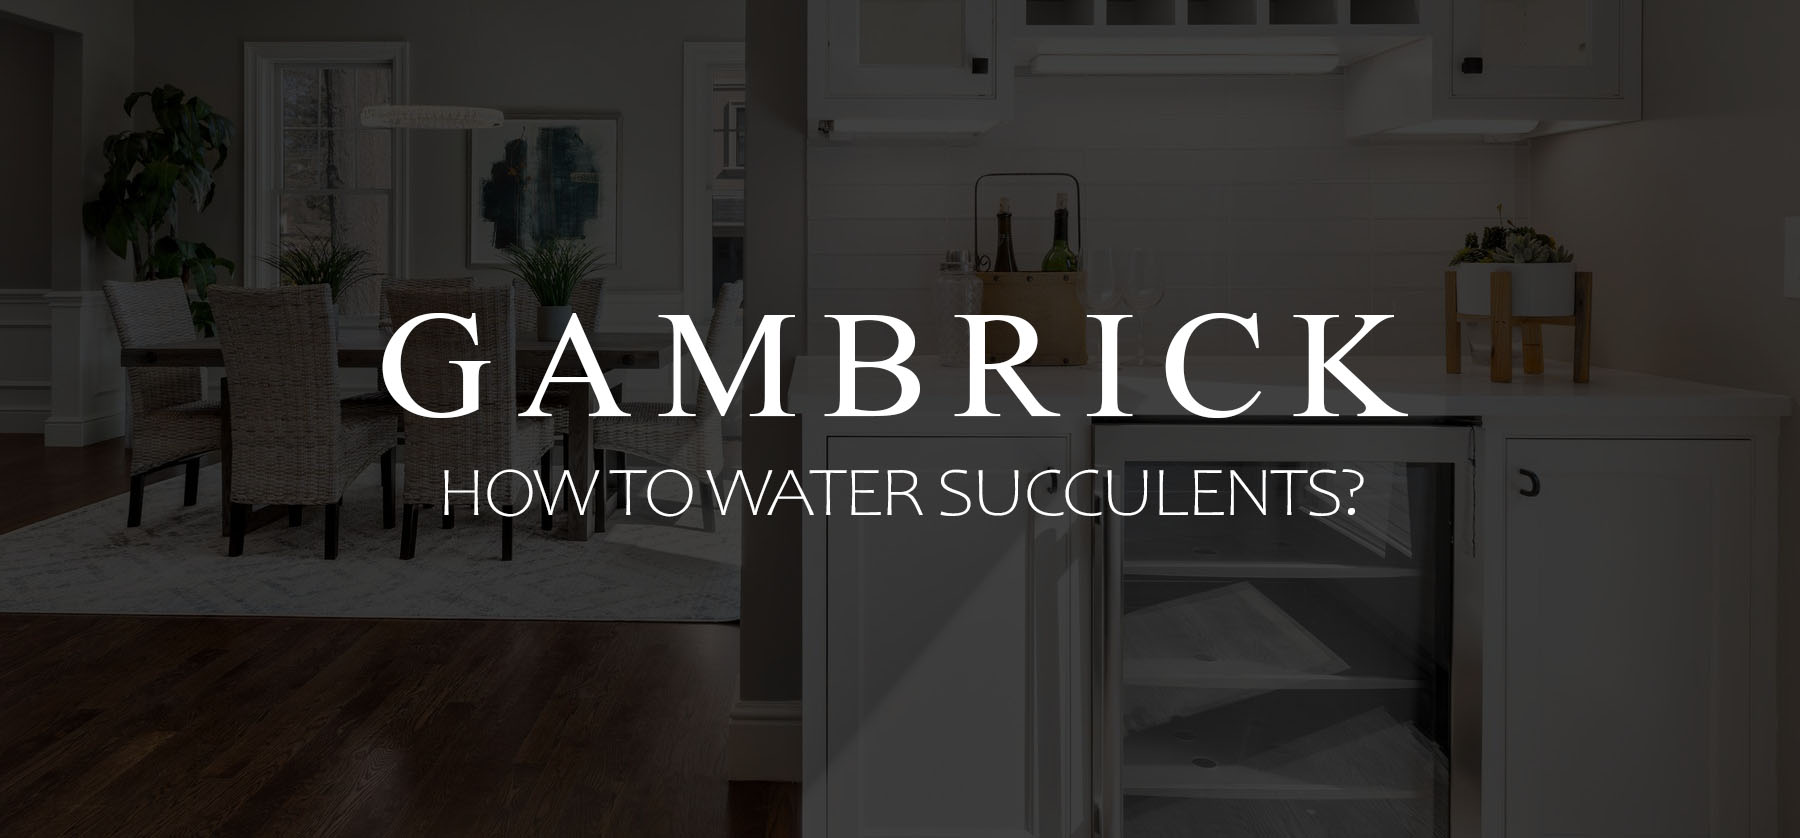 How to water succulents banner picture